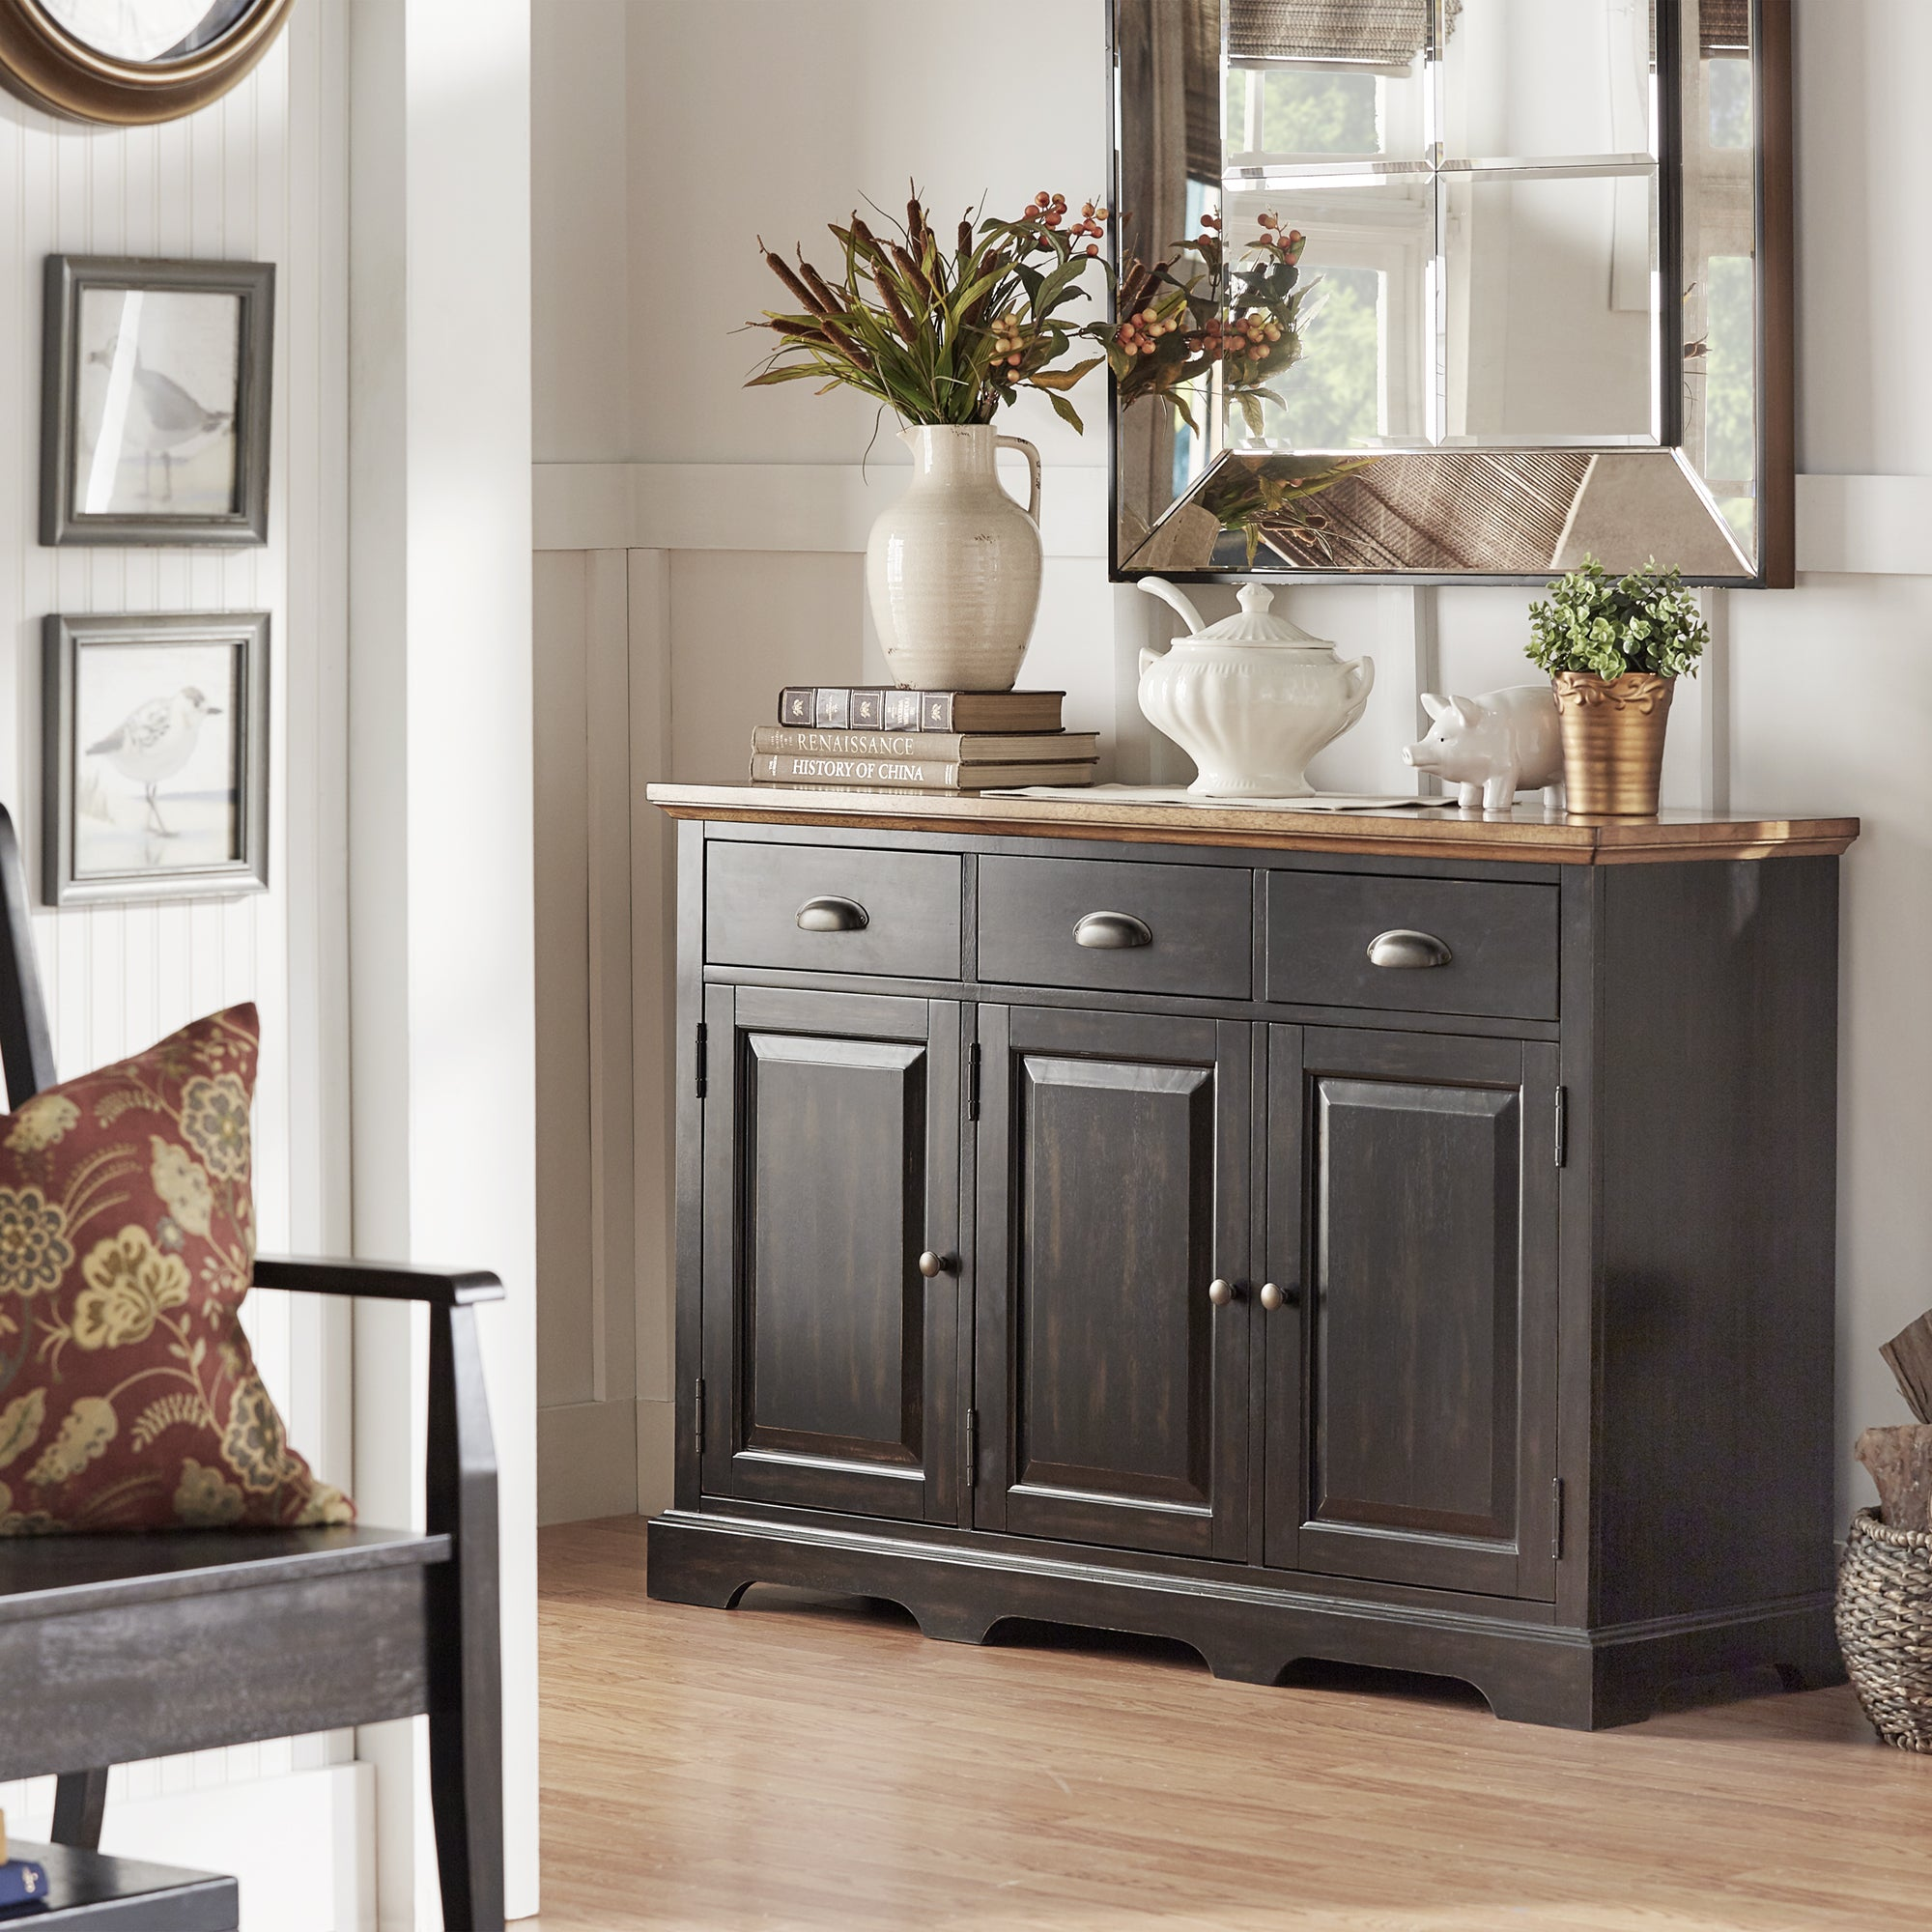 Eleanor Two-Tone Wood Cabinet Buffet Server by iNSPIRE Q Classic - Free  Shipping Today - Overstock.com - 20162833